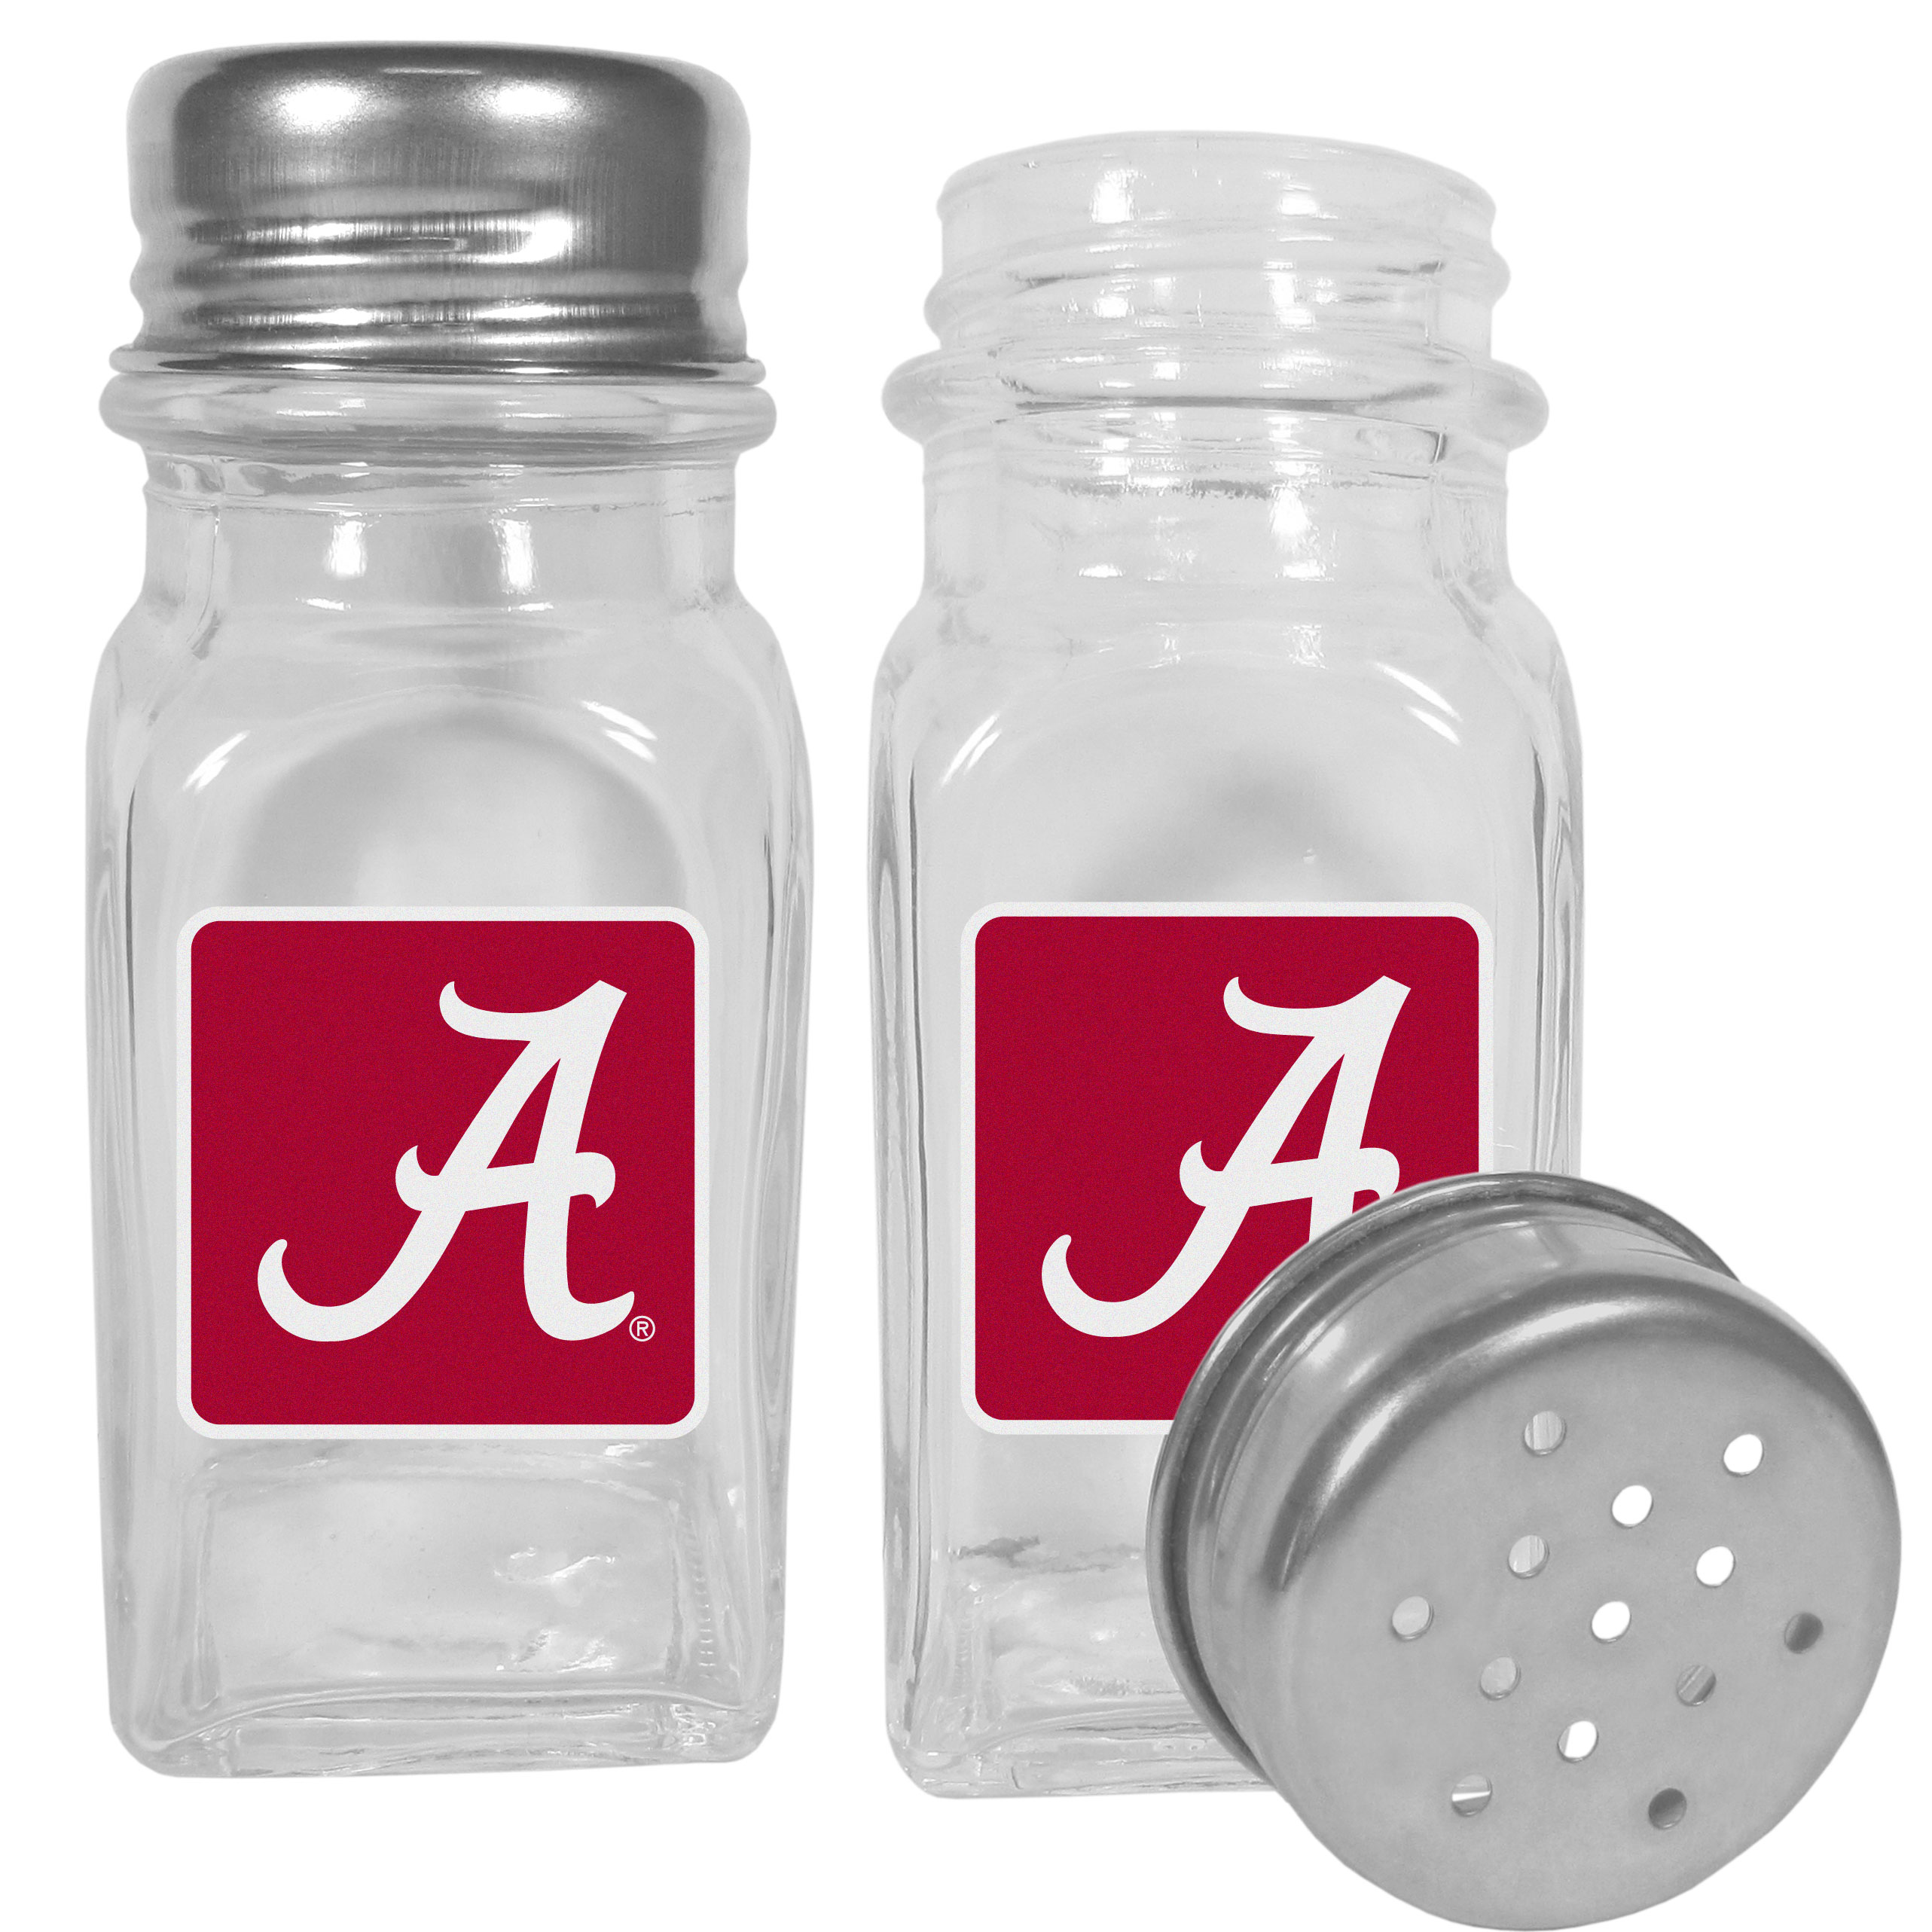 Alabama Crimson Tide Graphics Salt & Pepper Shaker - No tailgate party is complete without your Alabama Crimson Tide salt & pepper shakers featuring bright team logos. The diner replica salt and pepper shakers are glass with screw top lids. These team shakers are a great grill accessory whether you are barbecuing on the patio, picnicing or having a game day party.